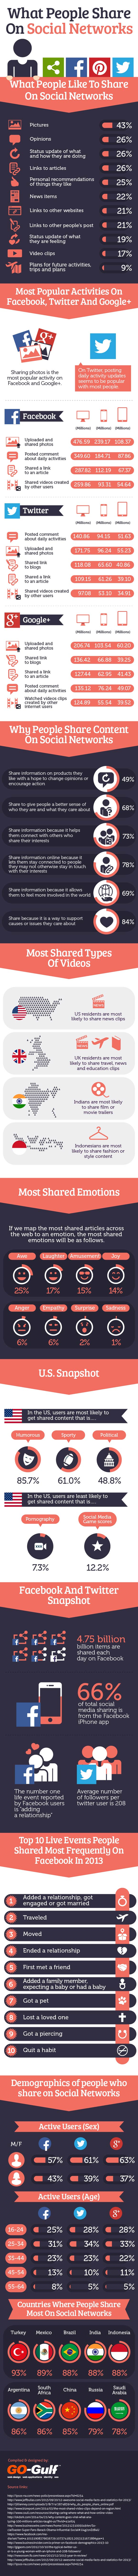 what-people-share-social-networks